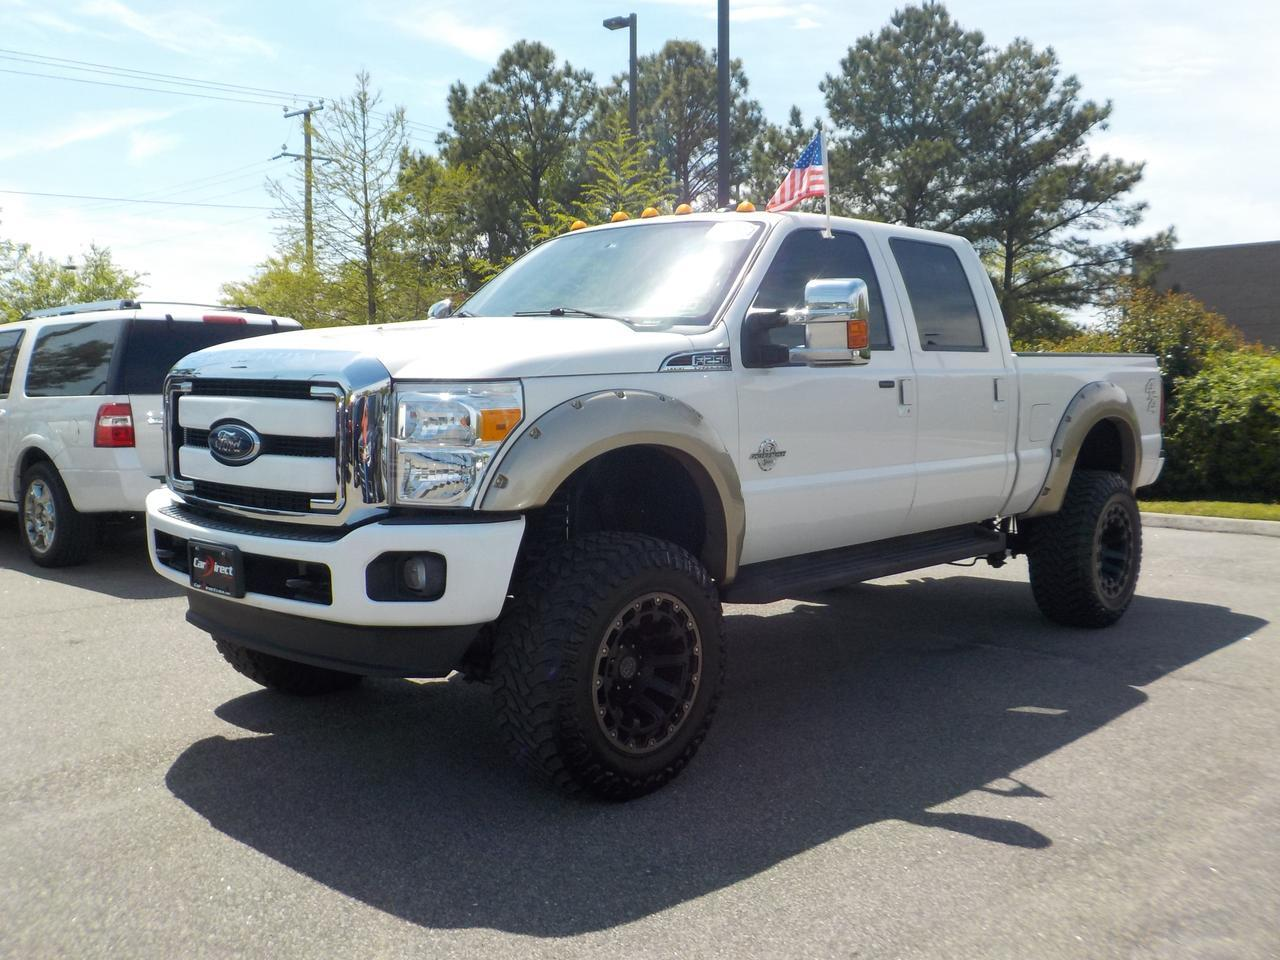 2016 FORD F-250 LARIAT SUPER DUTY CREW CAB 4X4, 6.7L DIESEL, LONGBED, LEATHER, NAVIGATION, TOW PKG, ONLY 78K MILES! Virginia Beach VA